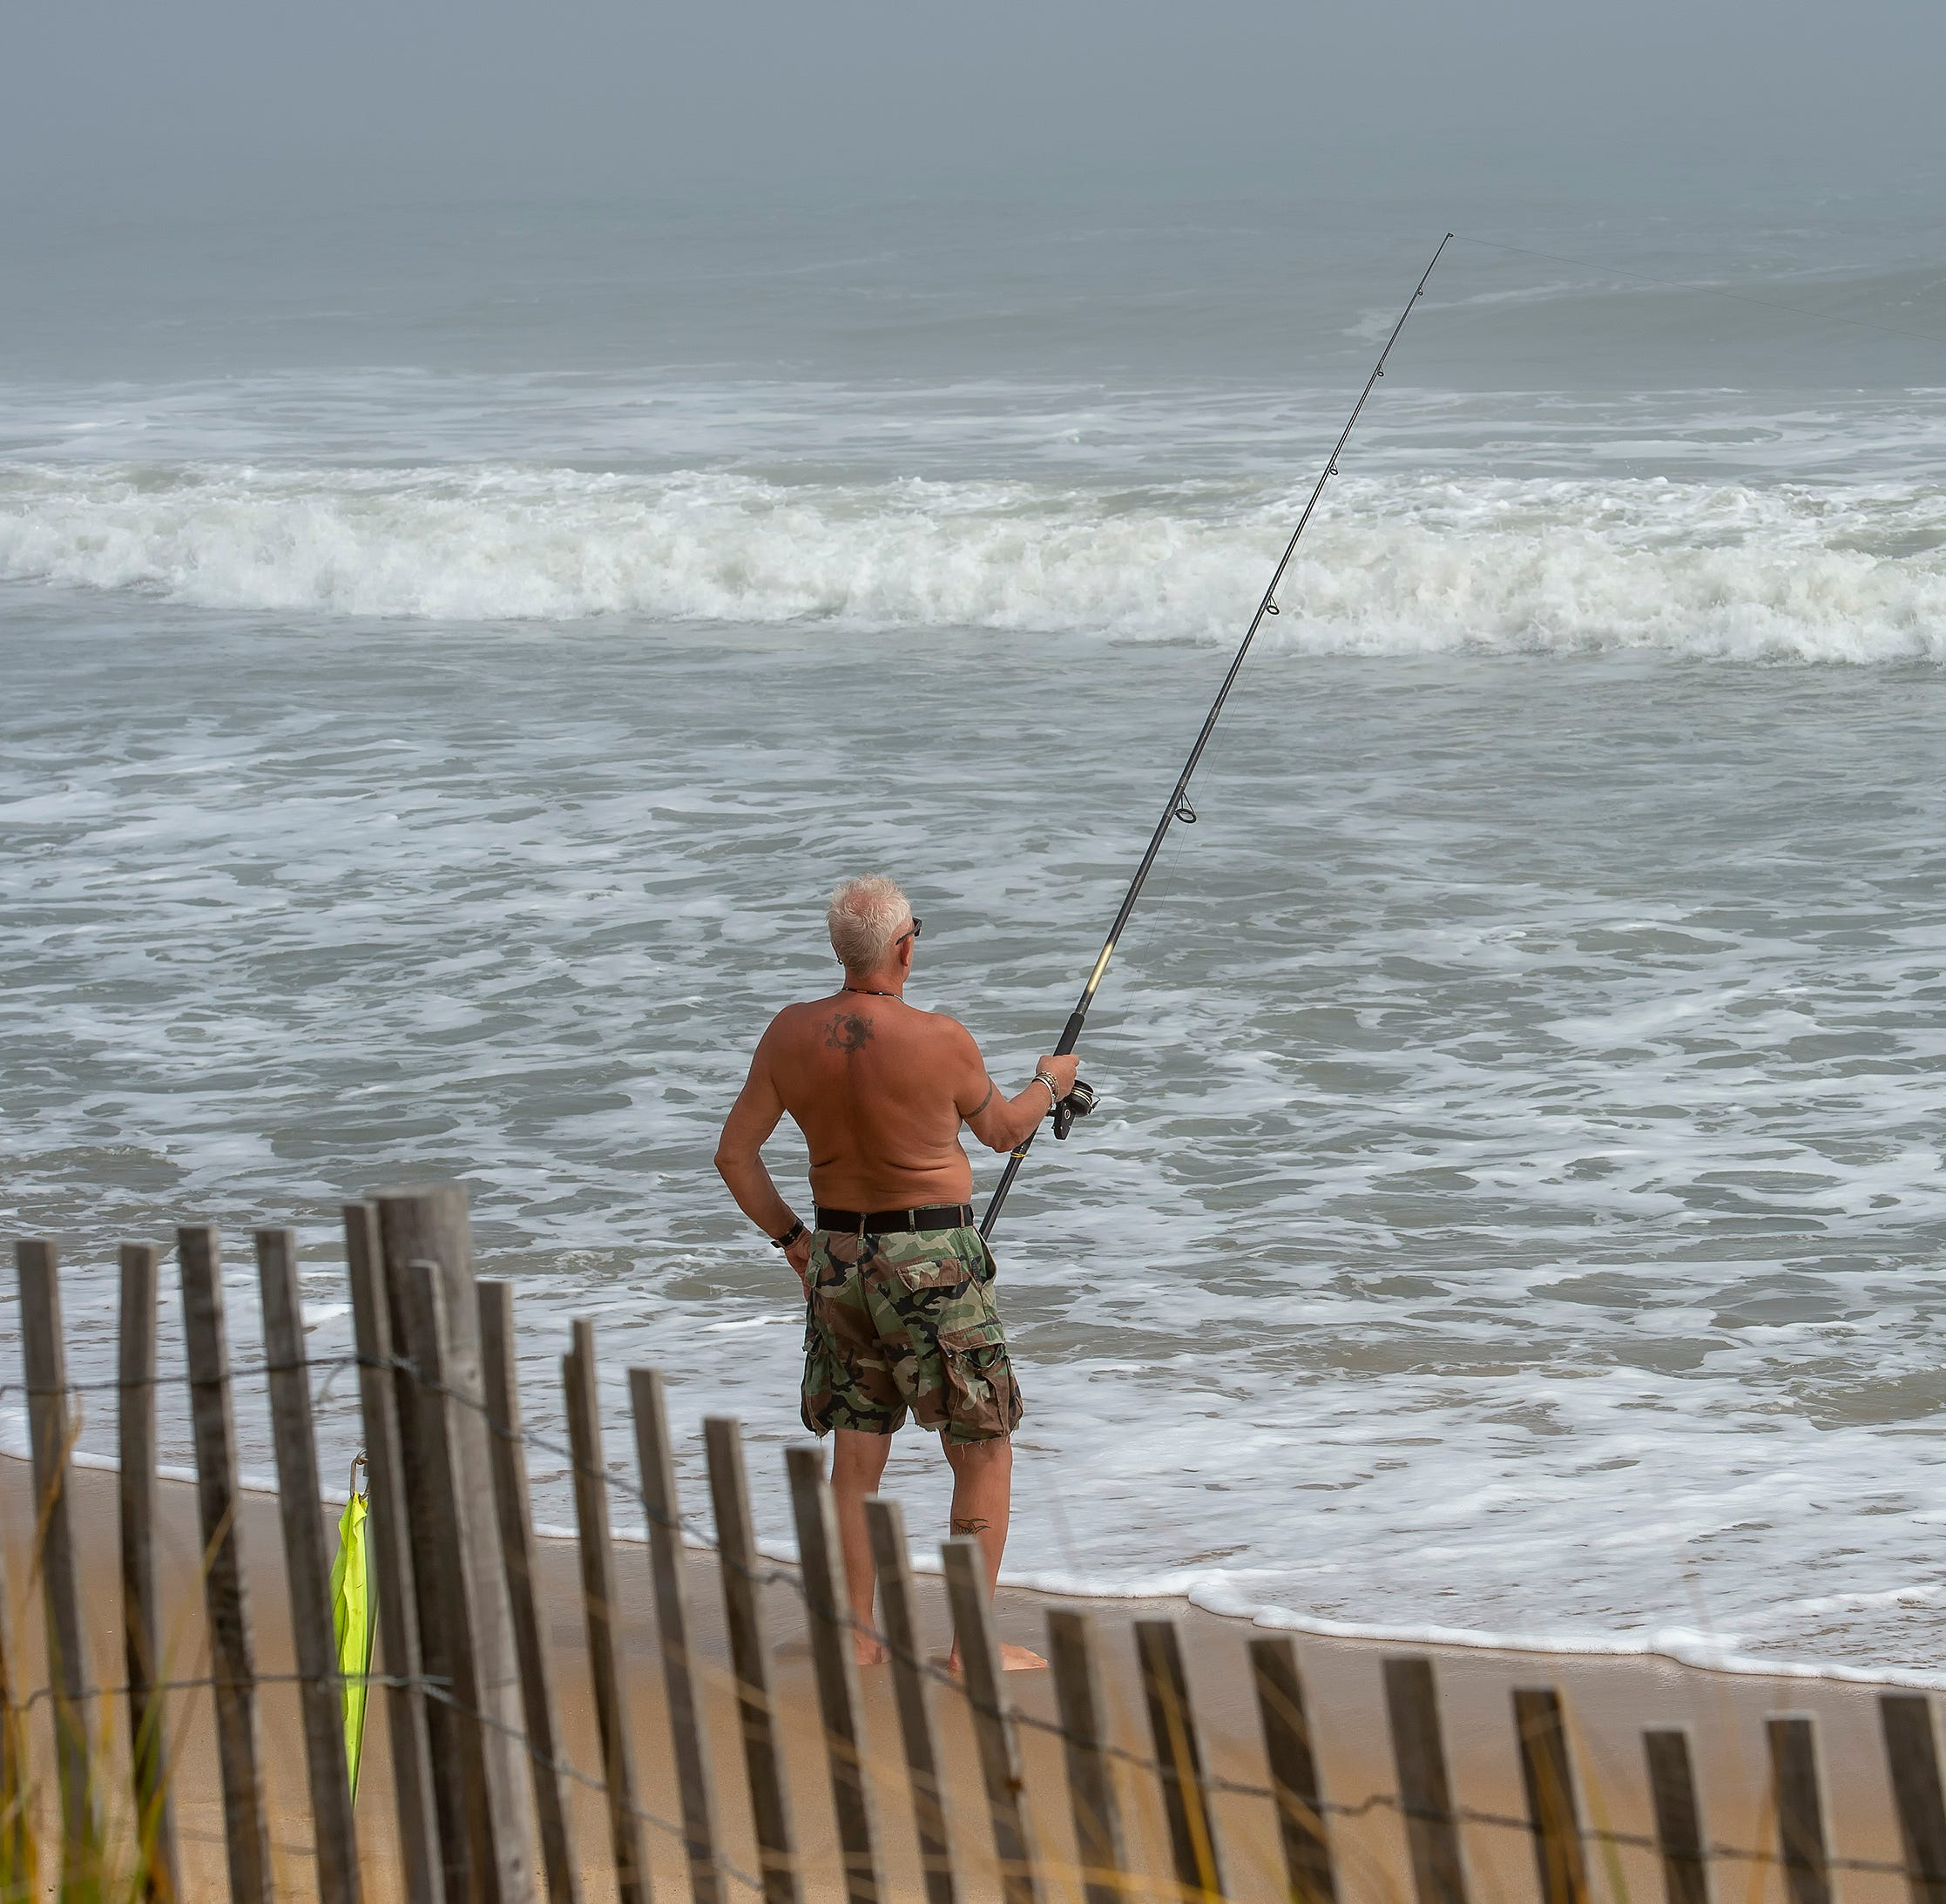 Not much to fish for with all the rain and wind